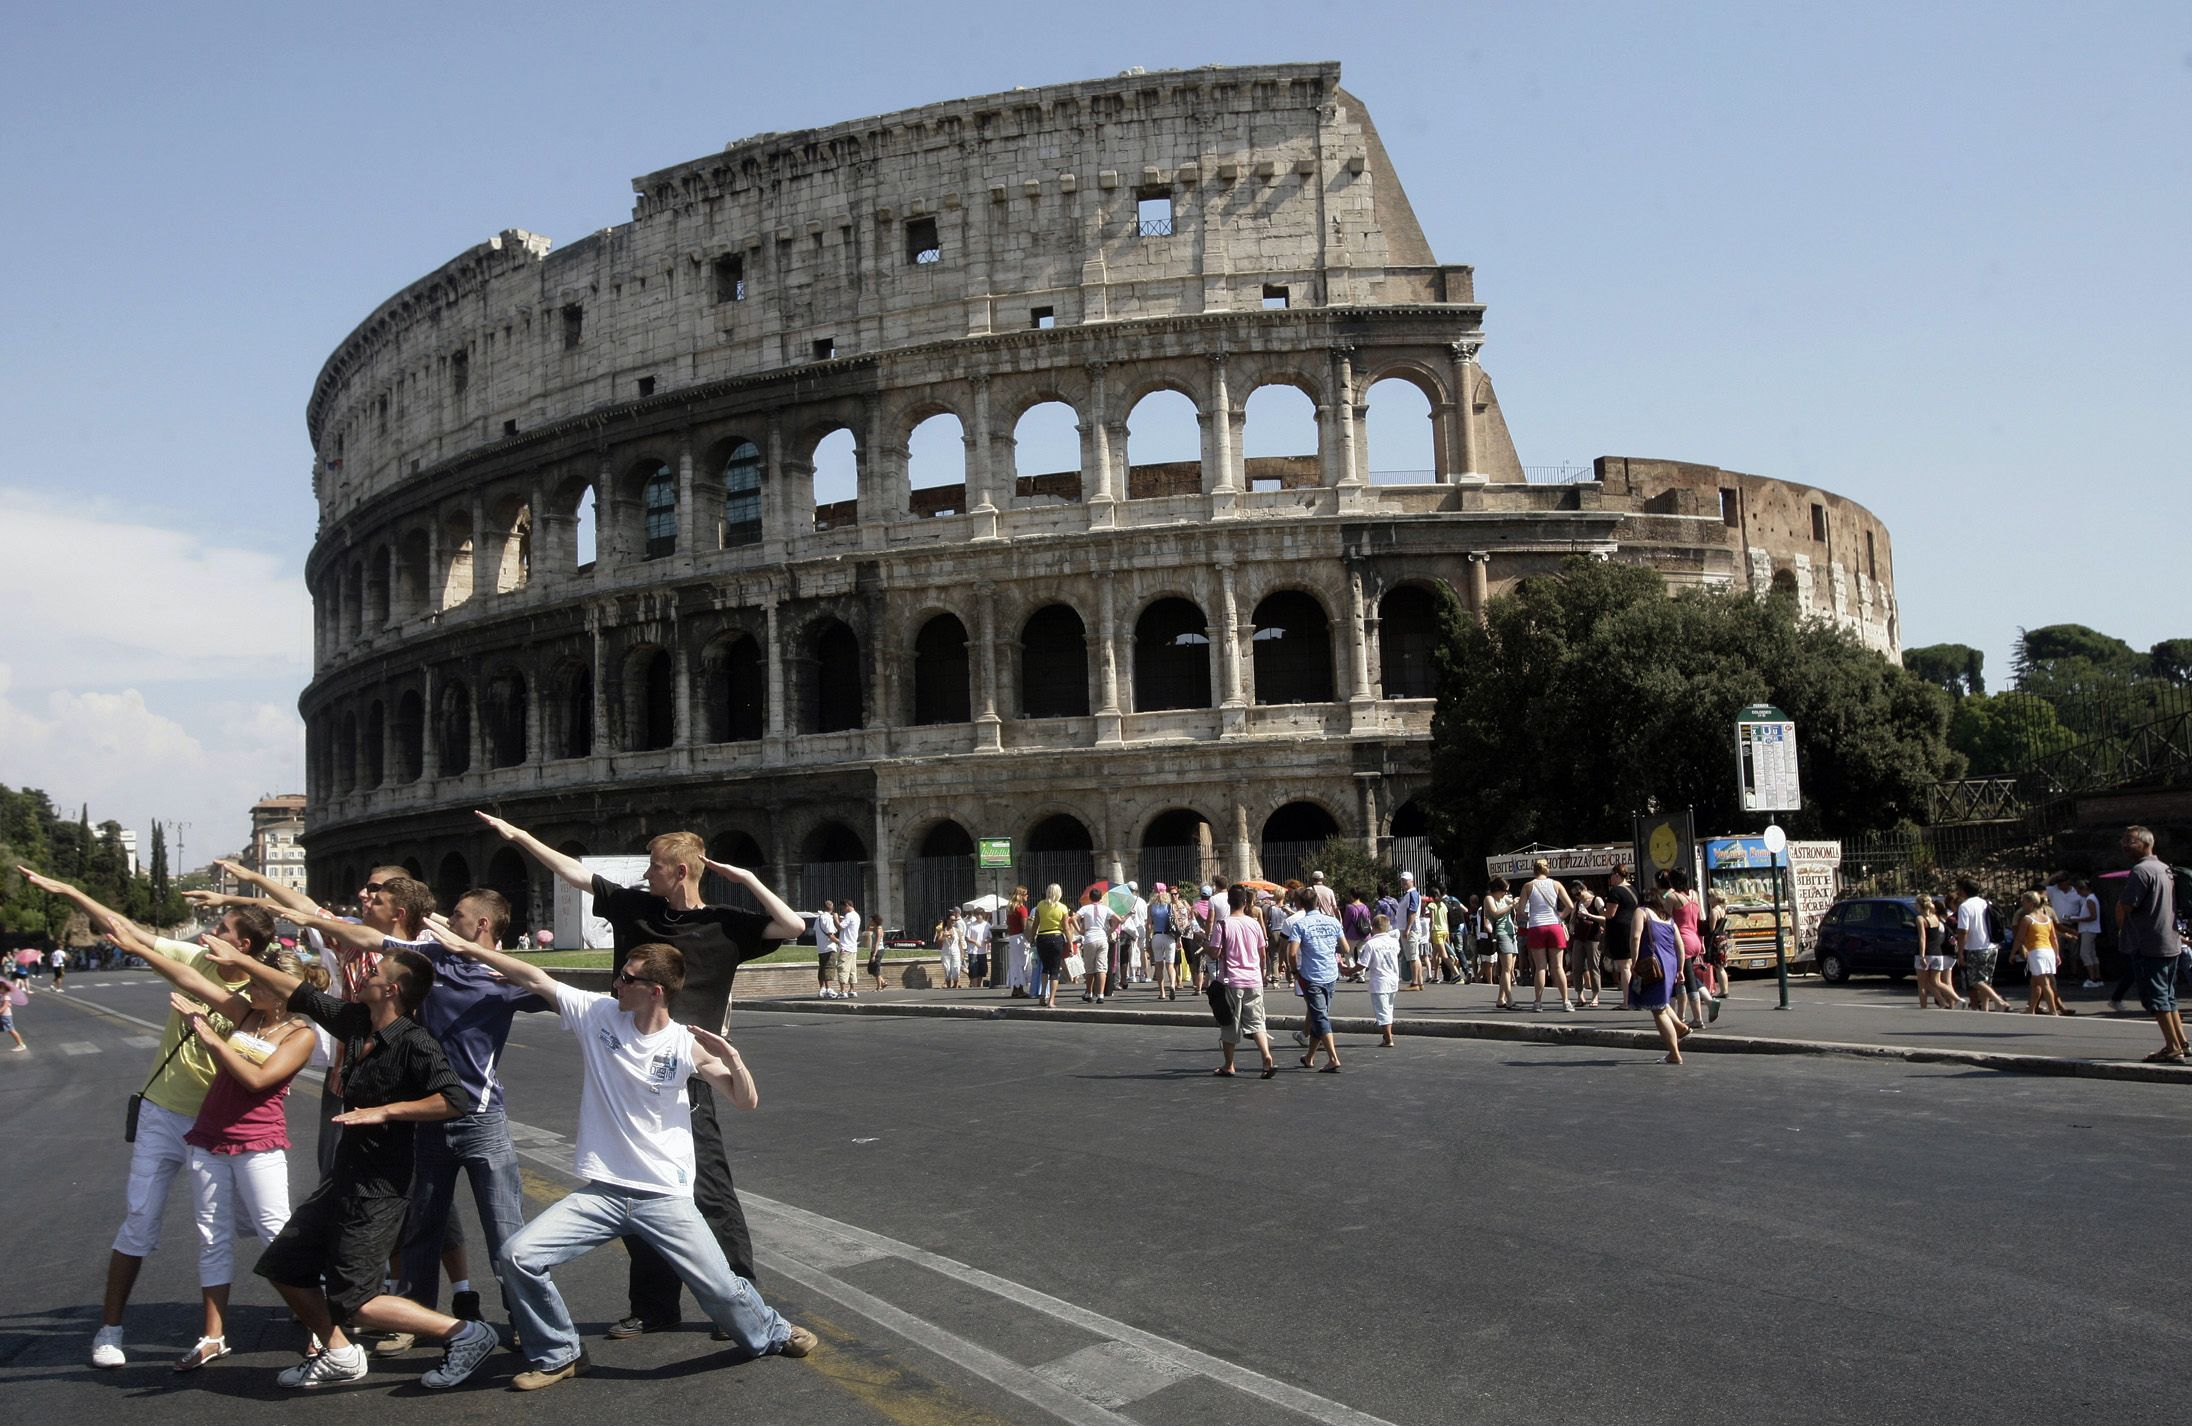 rome asks for 487 million to restore ancient heritage sites